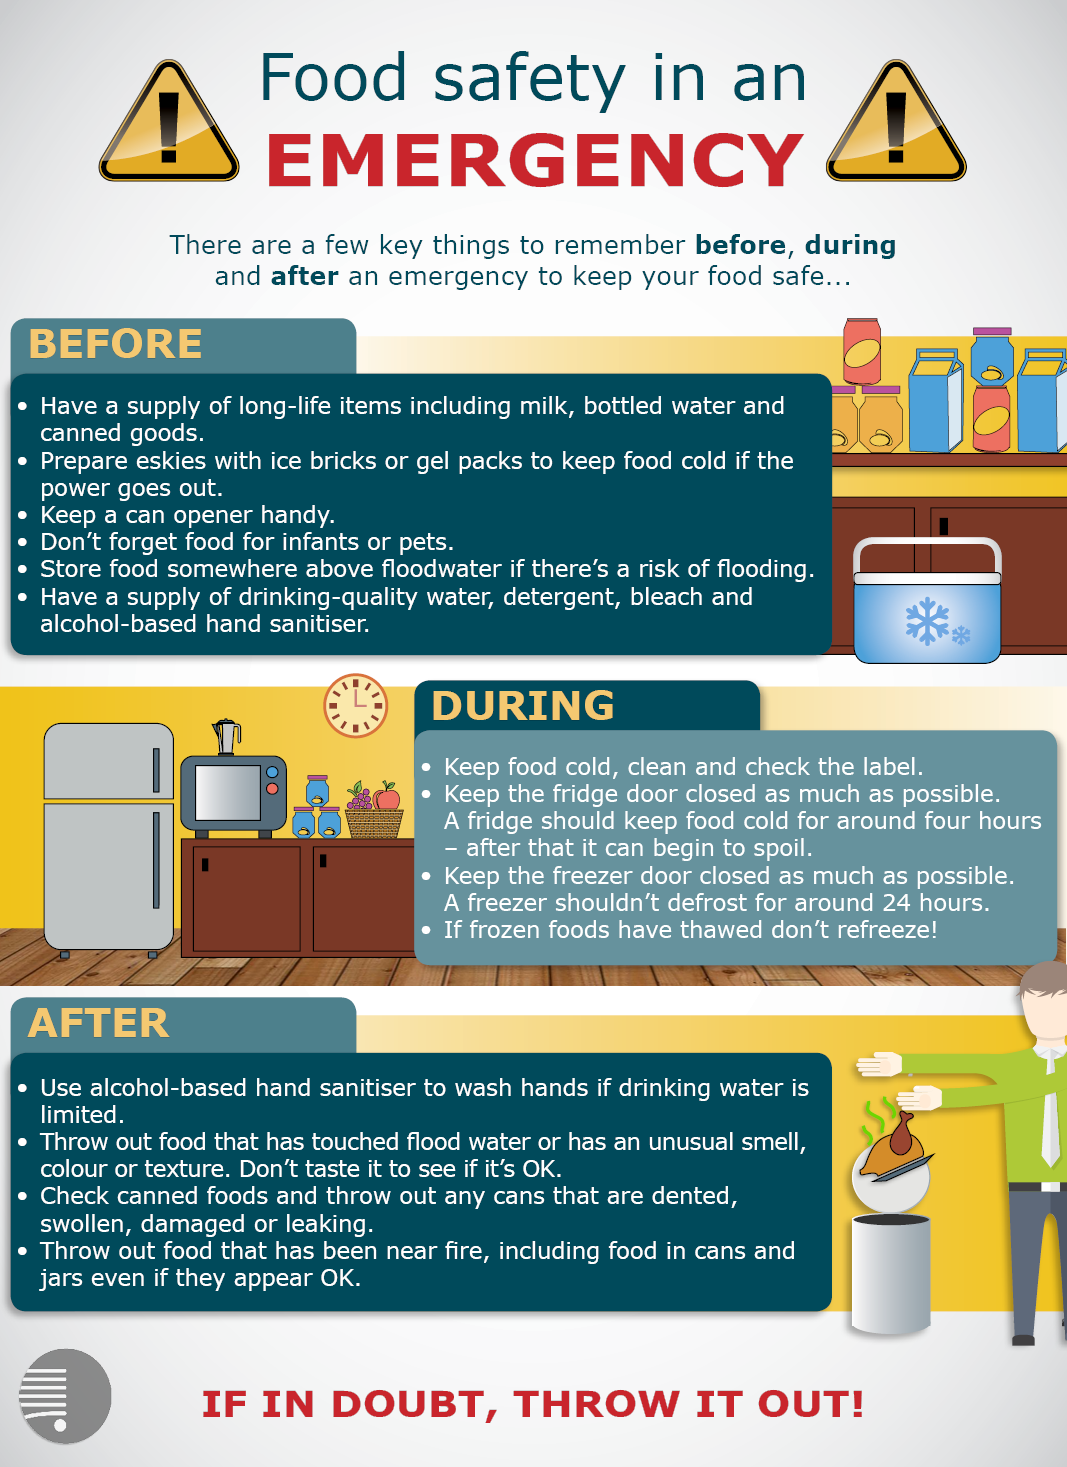 food safety in an emergency infographic. for a more detailed explaination email information@foodstandards.gov.au